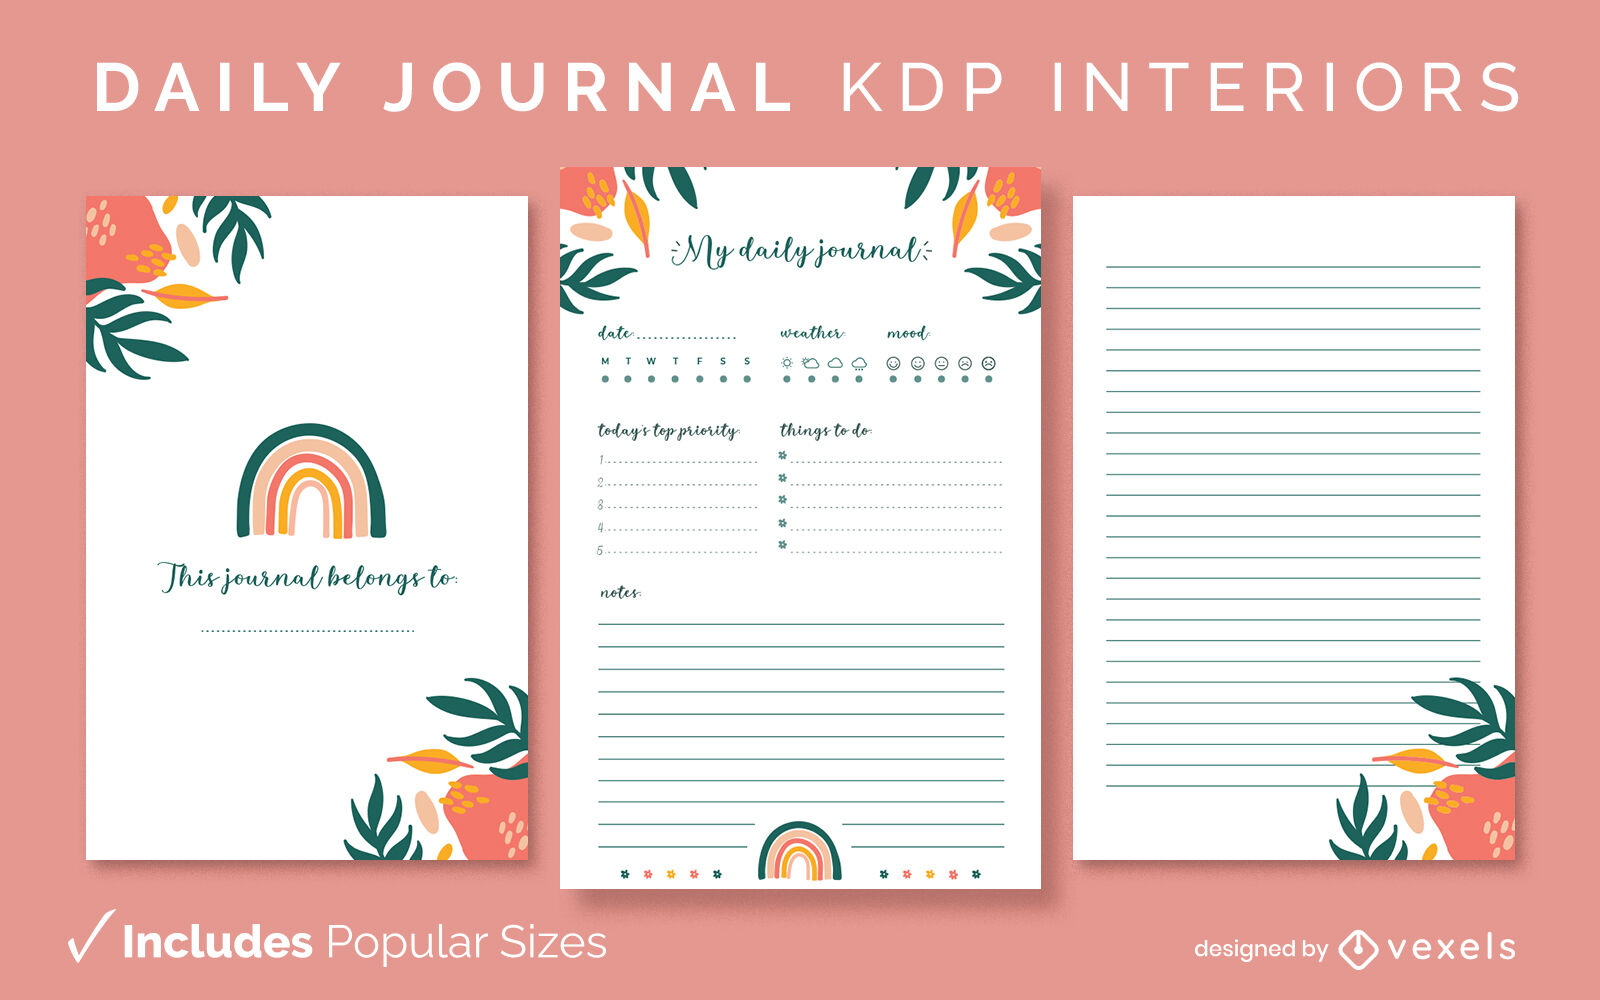 Nature daily journal design template KDP